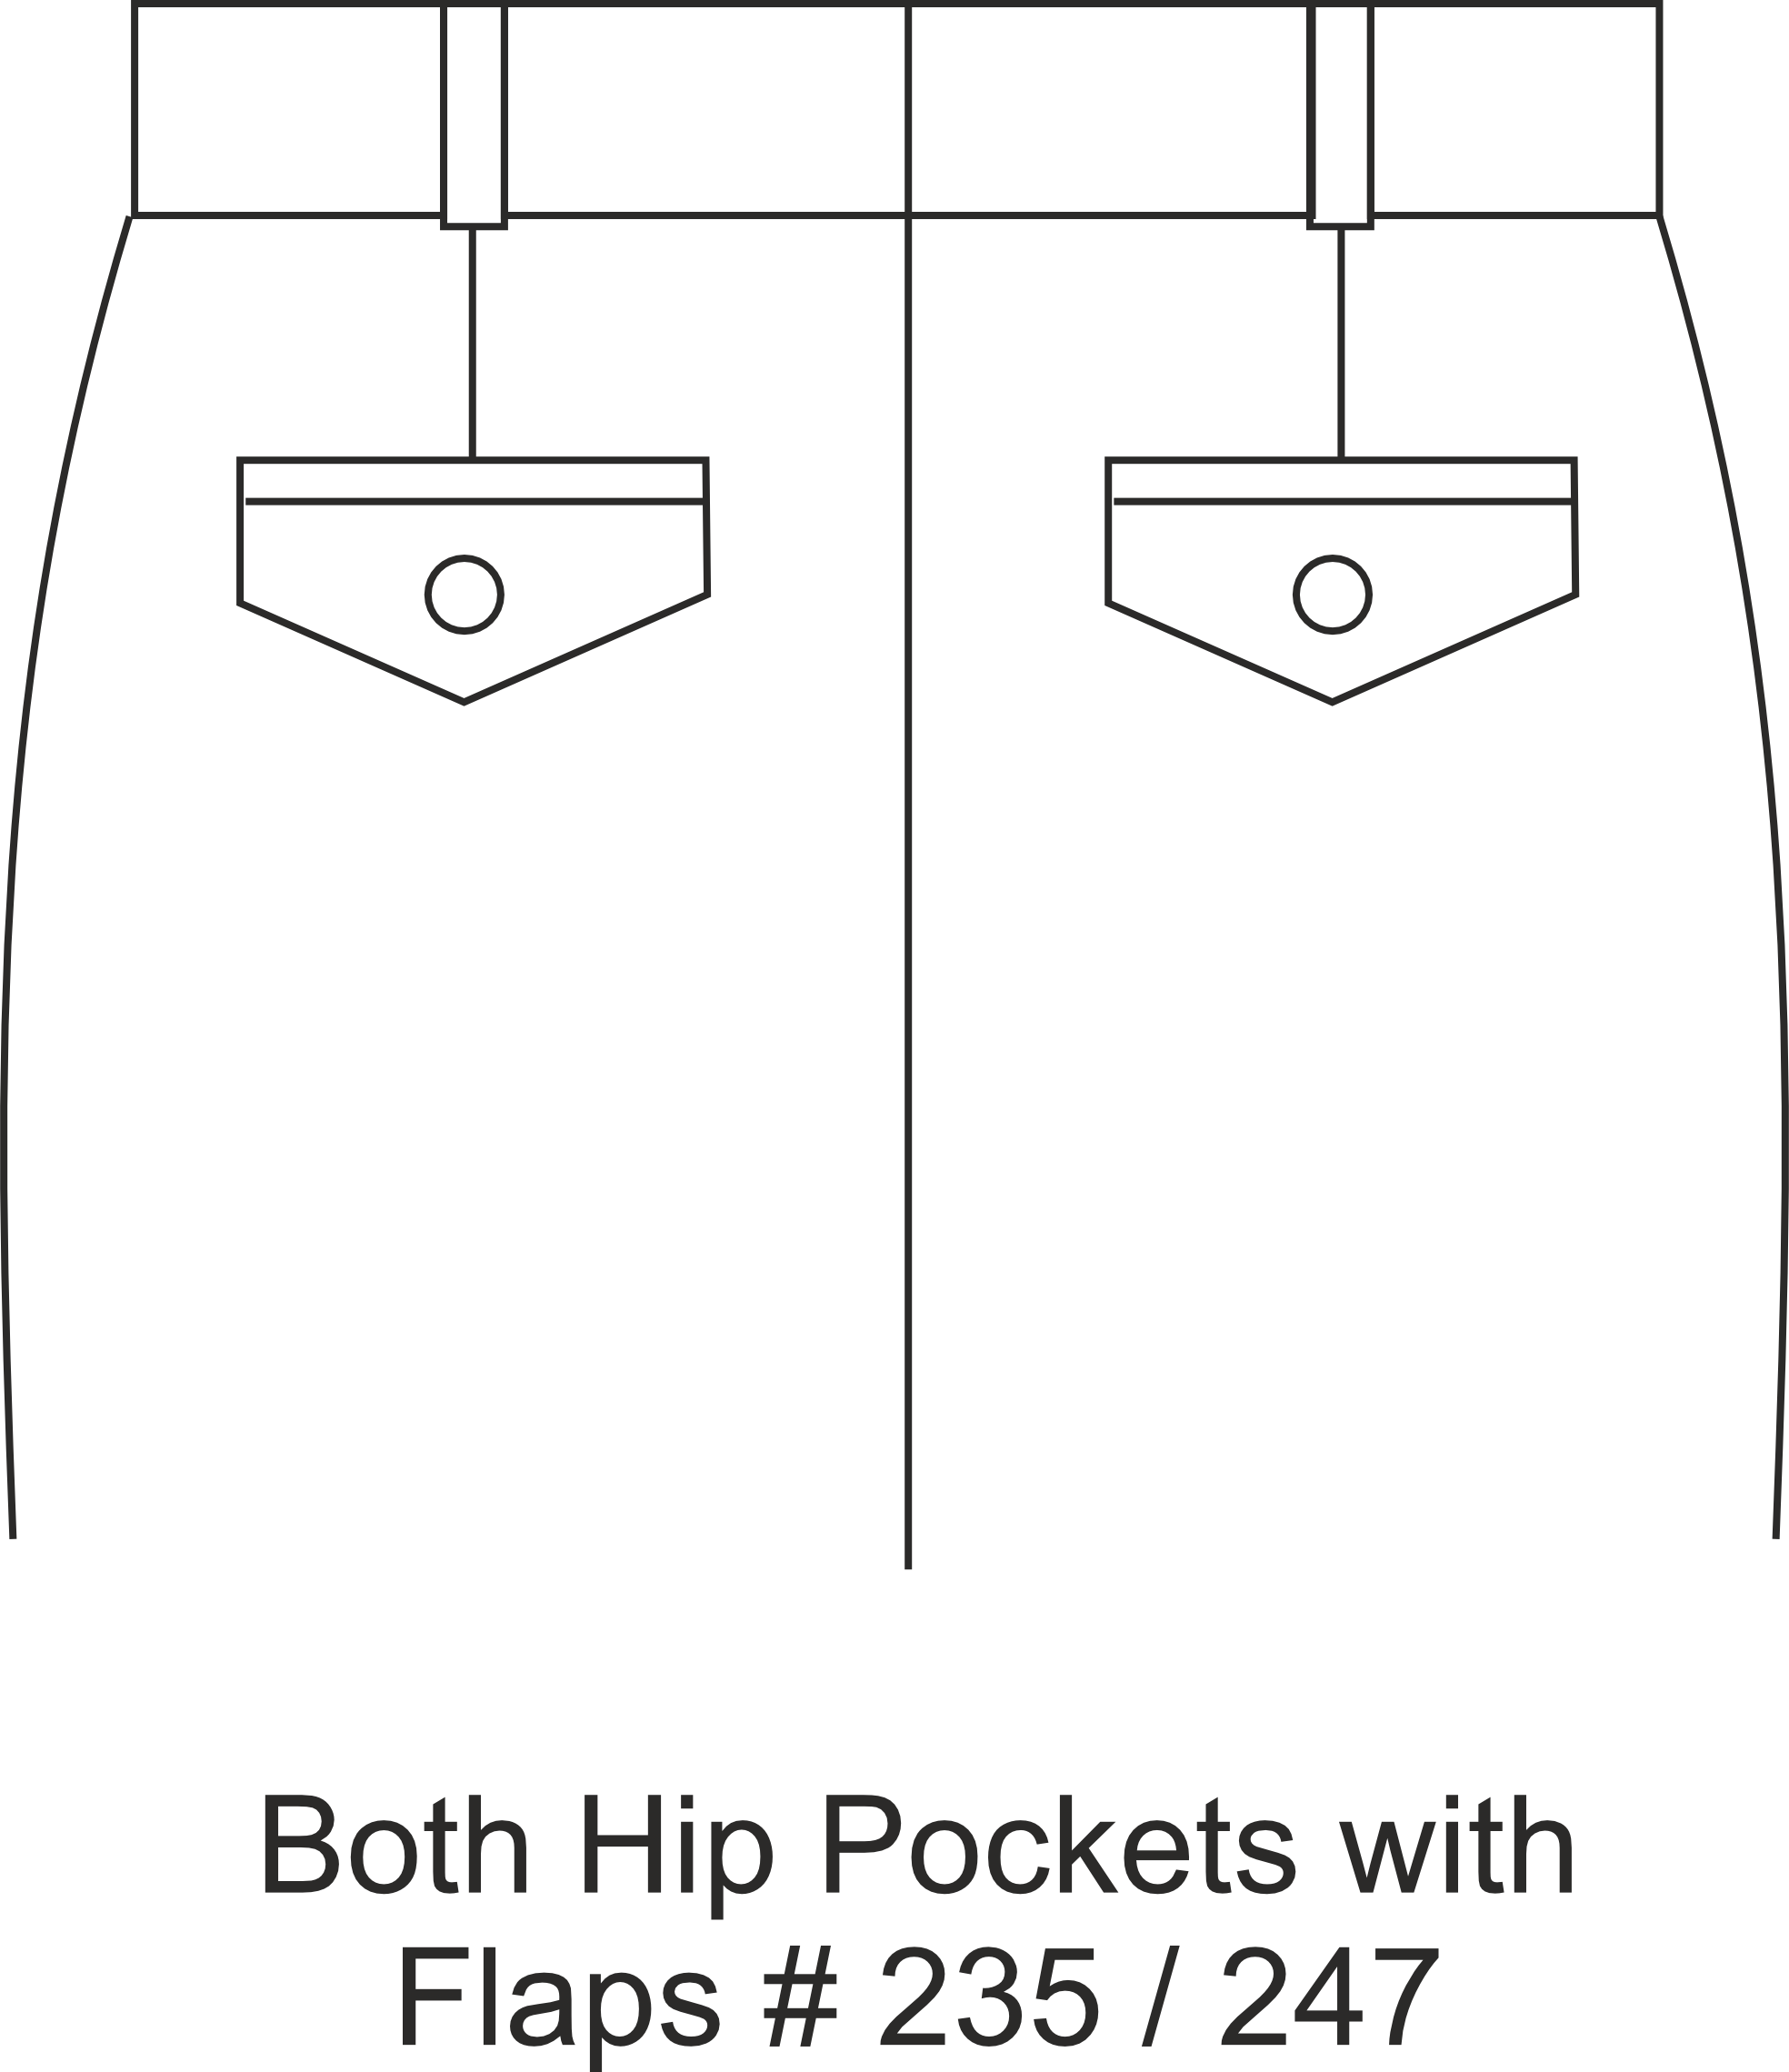 pockets-flaps-both-hips